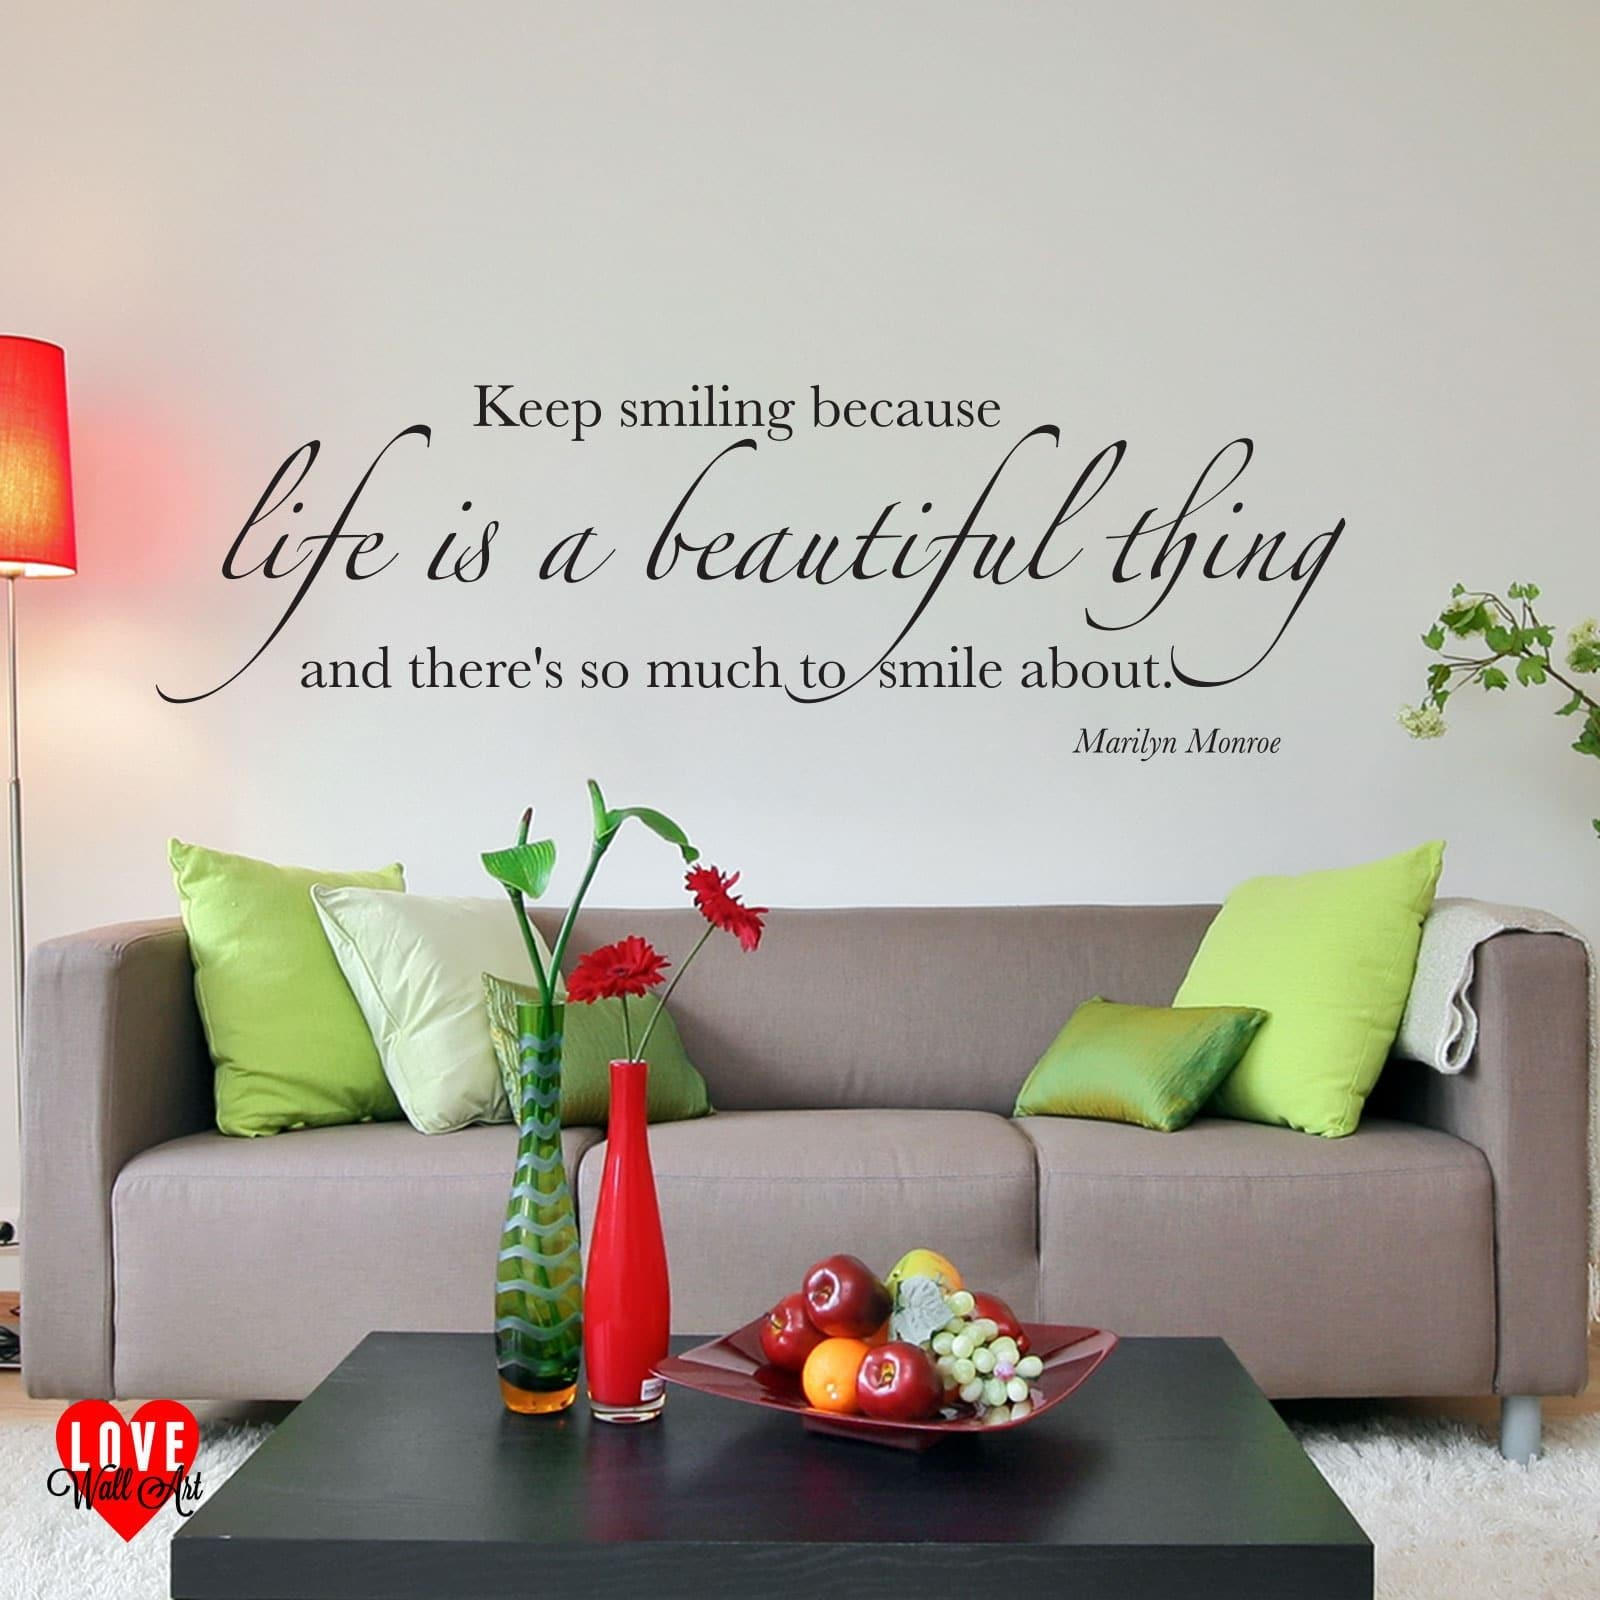 Is A Beautiful Thing Marilyn Monroe Quote Wall Art Sticker Intended For Marilyn Monroe Wall Art Quotes (View 16 of 20)